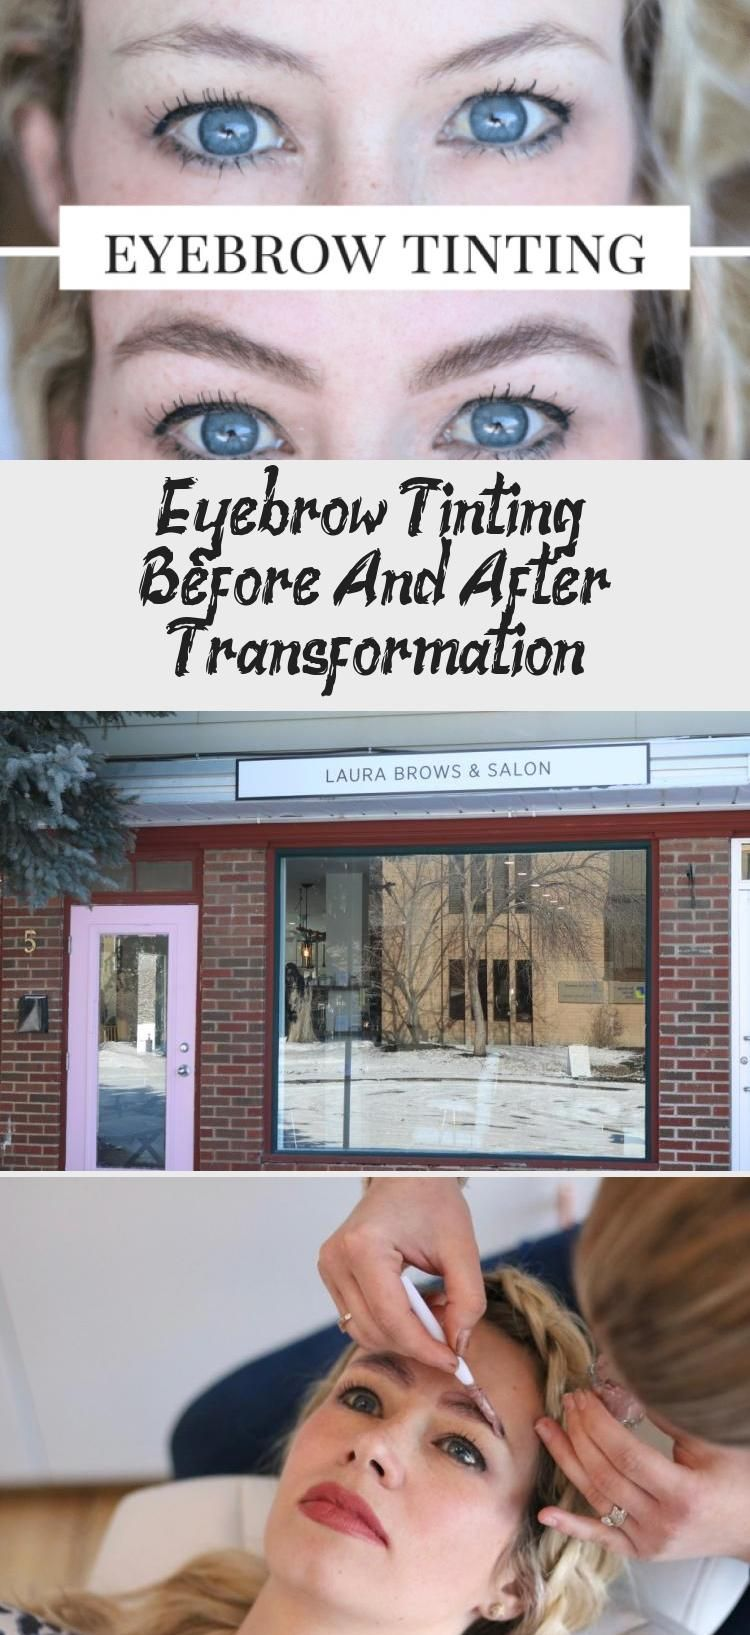 Eyebrow Tinting – Before And After Transformation #naturalbrows Eyebrow Tinting will change your life! No microblading here, just shaping your natural brows! See the full eyebrow tinting before and after! #eyebrowsAnleitung #eyebrowsMaquillaje #Darkeyebrows #eyebrowsKorean #eyebrowsGrowingOut #naturalbrows